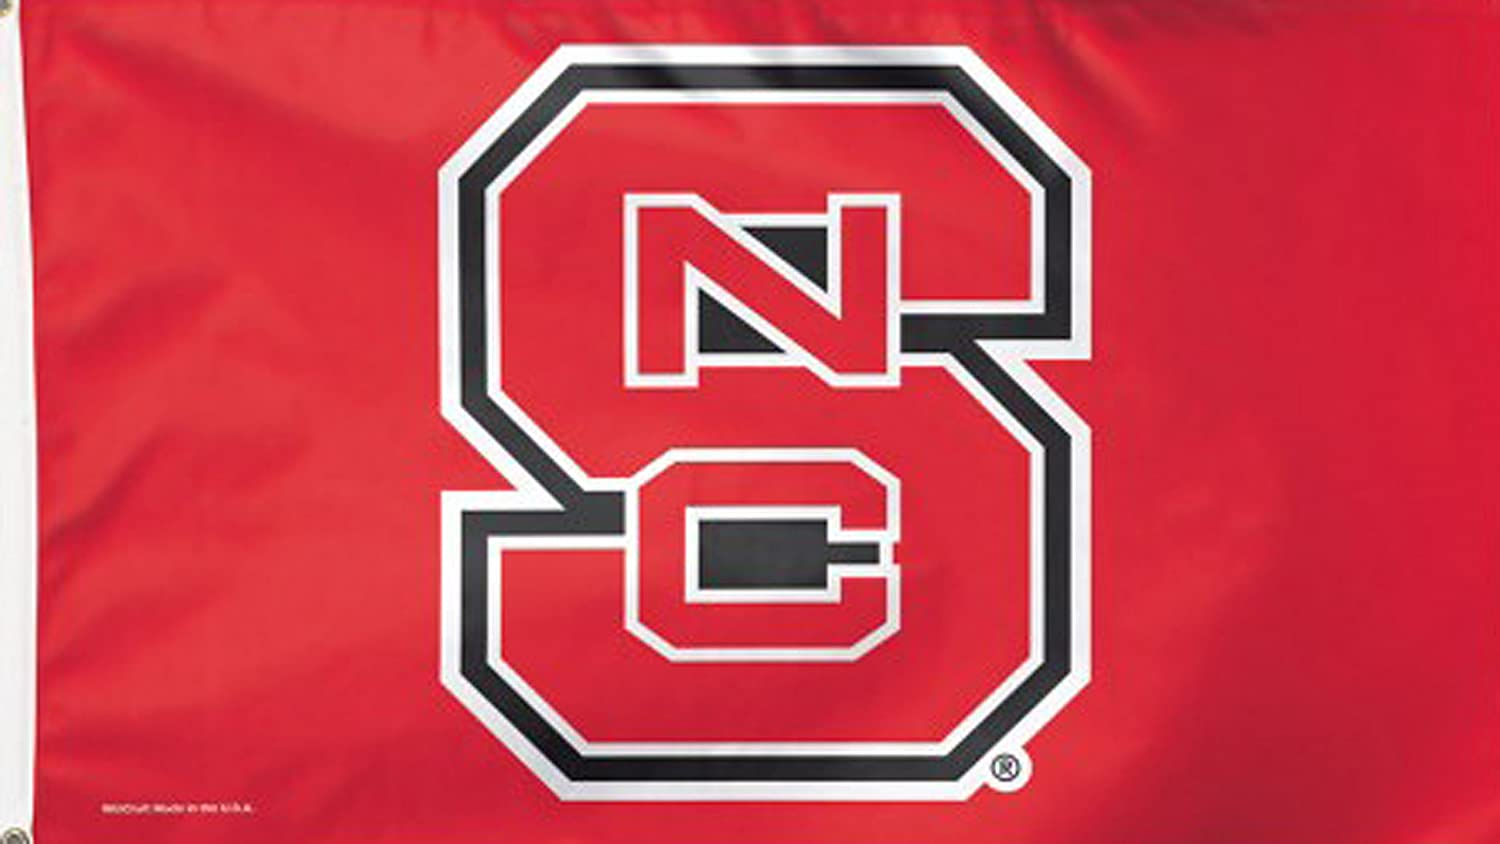 NCAA North Carolina State University 02139115 Deluxe Flag, 3' x 5'